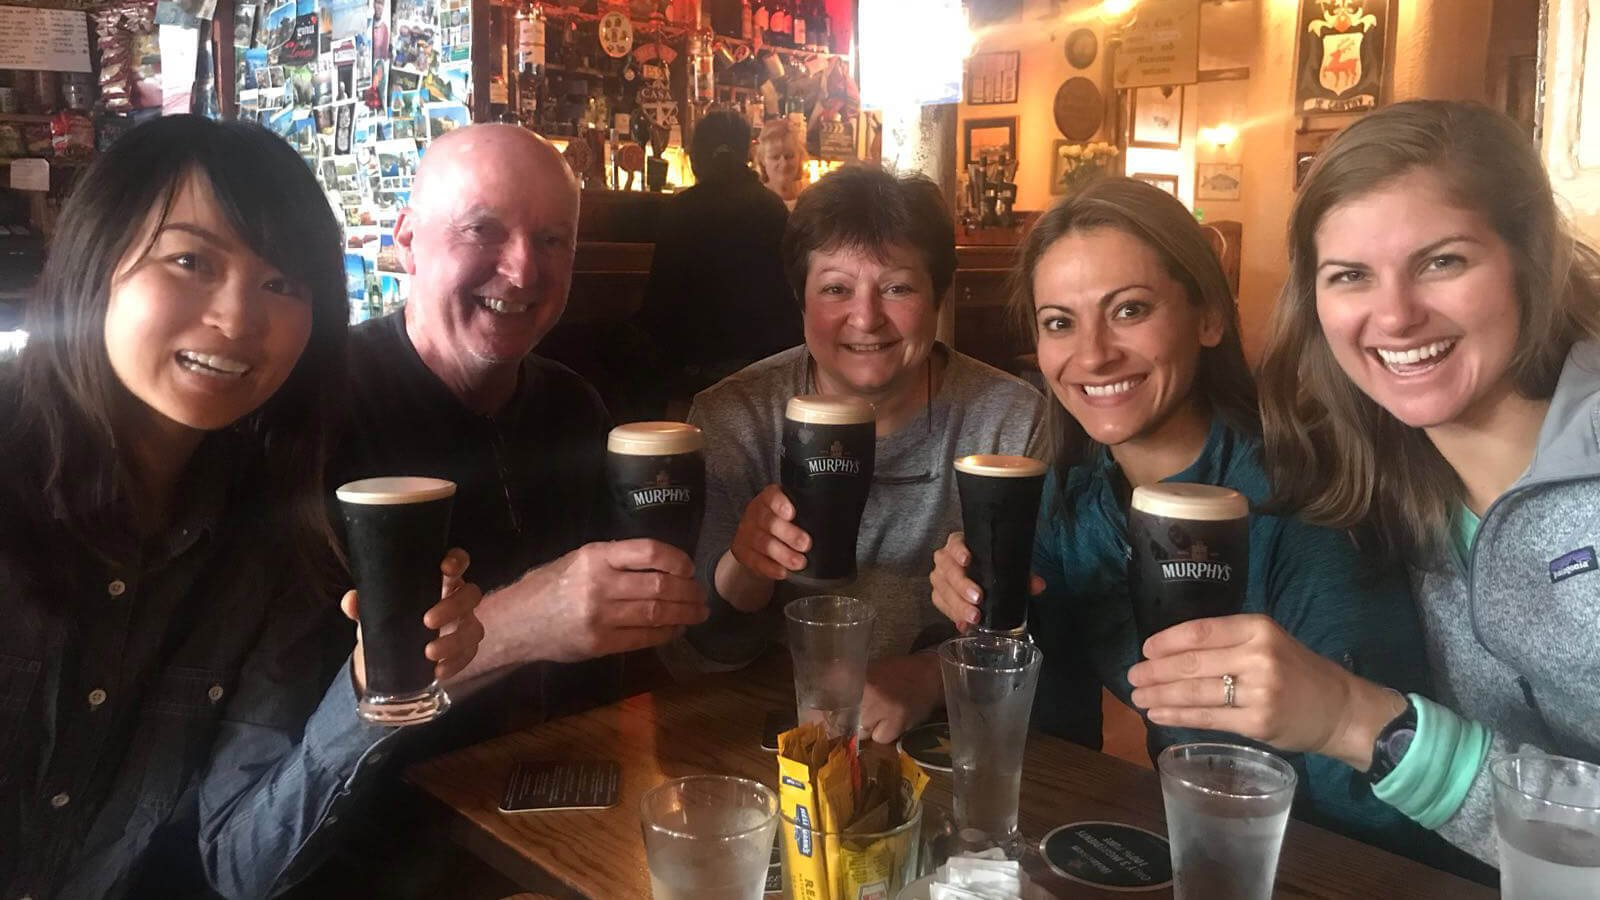 Lunch time pints of Murphy's on tour in Cork, Ireland for these Vagabond guests